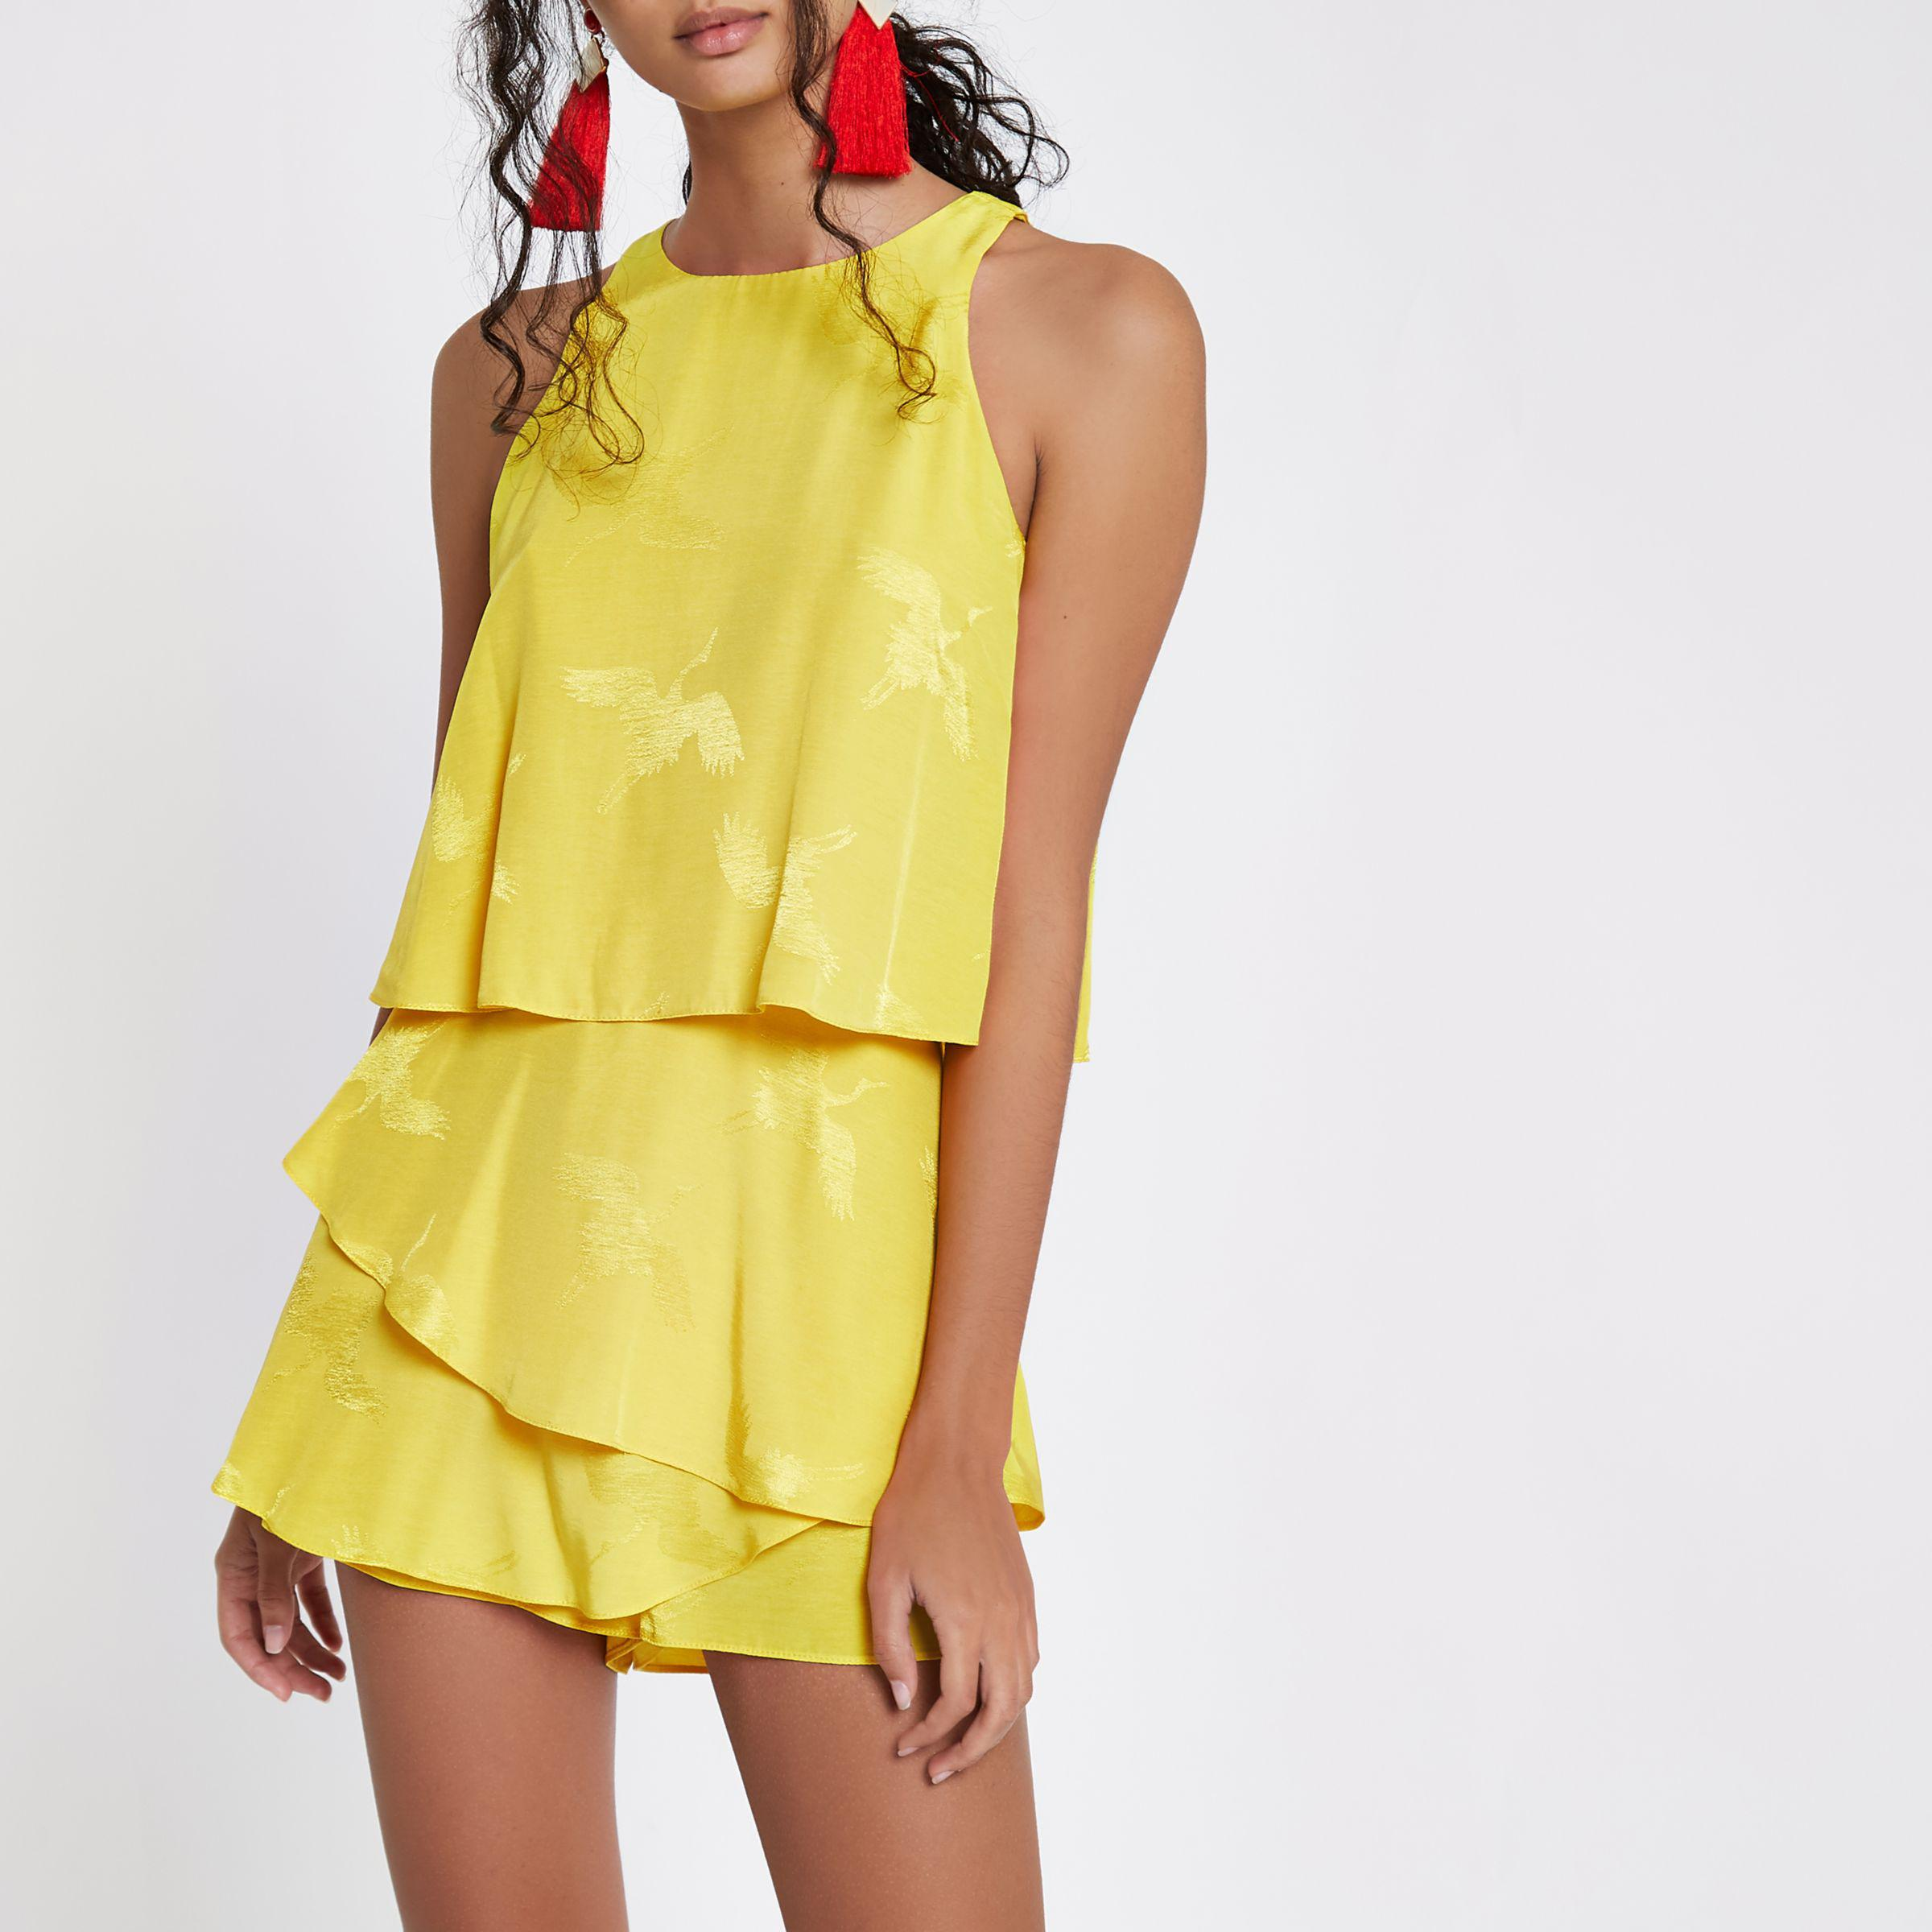 b2c02b65a12 Lyst - River Island Tiered Frill Jacquard Playsuit in Yellow